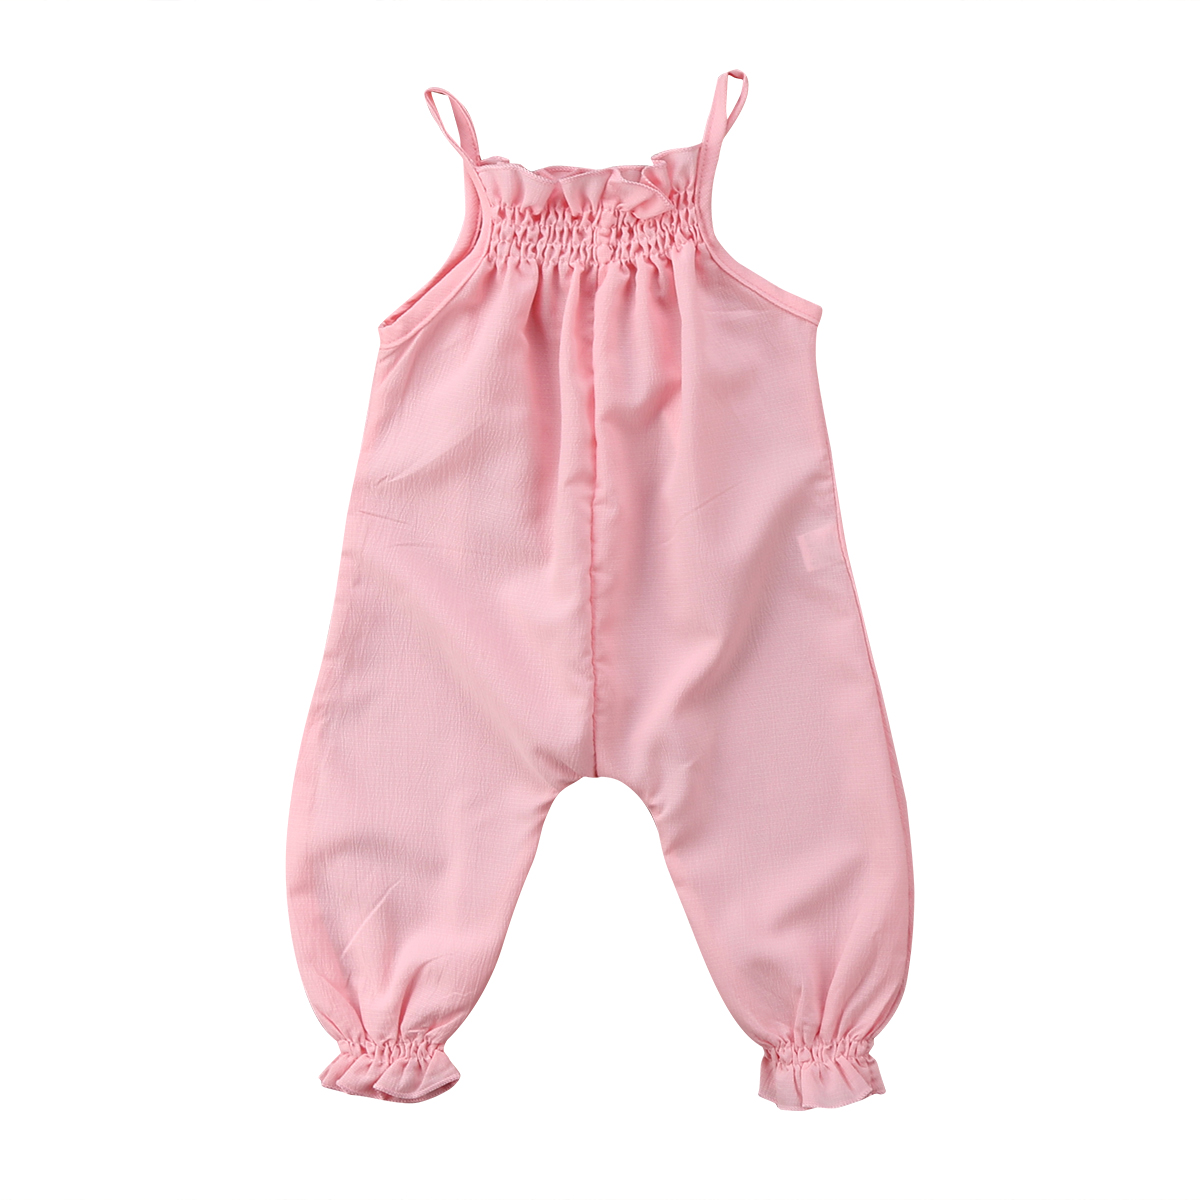 Pudcoco Toddler Infant Baby Girls Strap Romper Newborn Baby Girls Clothing Cotton Overalls Jumpsuit Playsuit Baby Girls Clothes